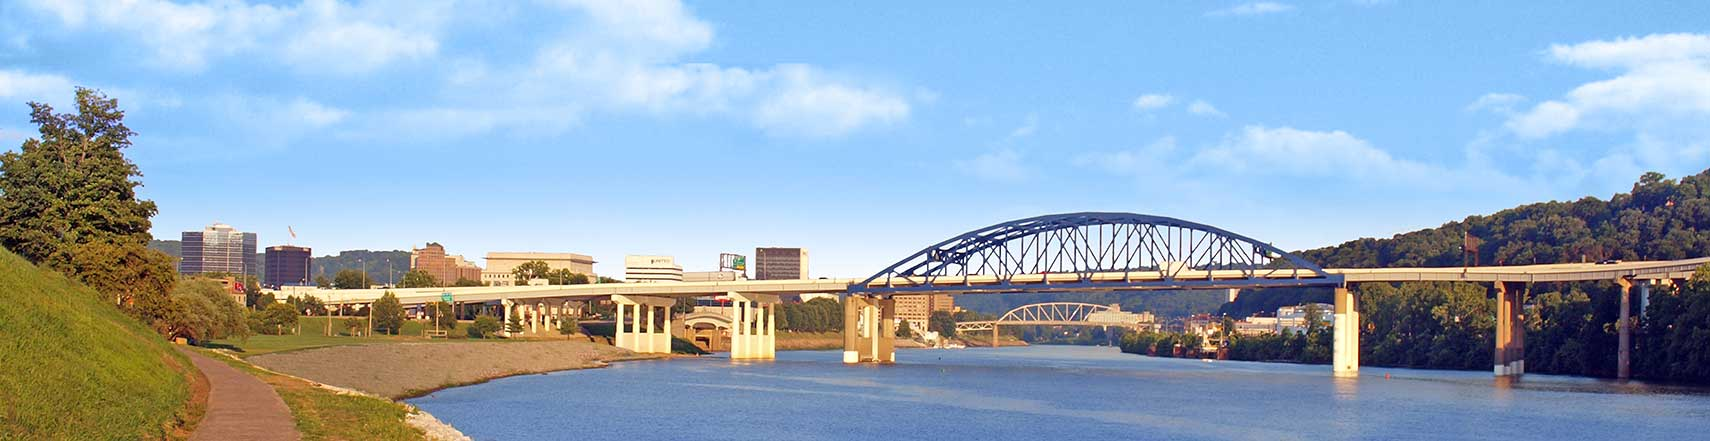 Eugene A Carter Memorial Bridge Over Kanawha River Charleston West Virginia